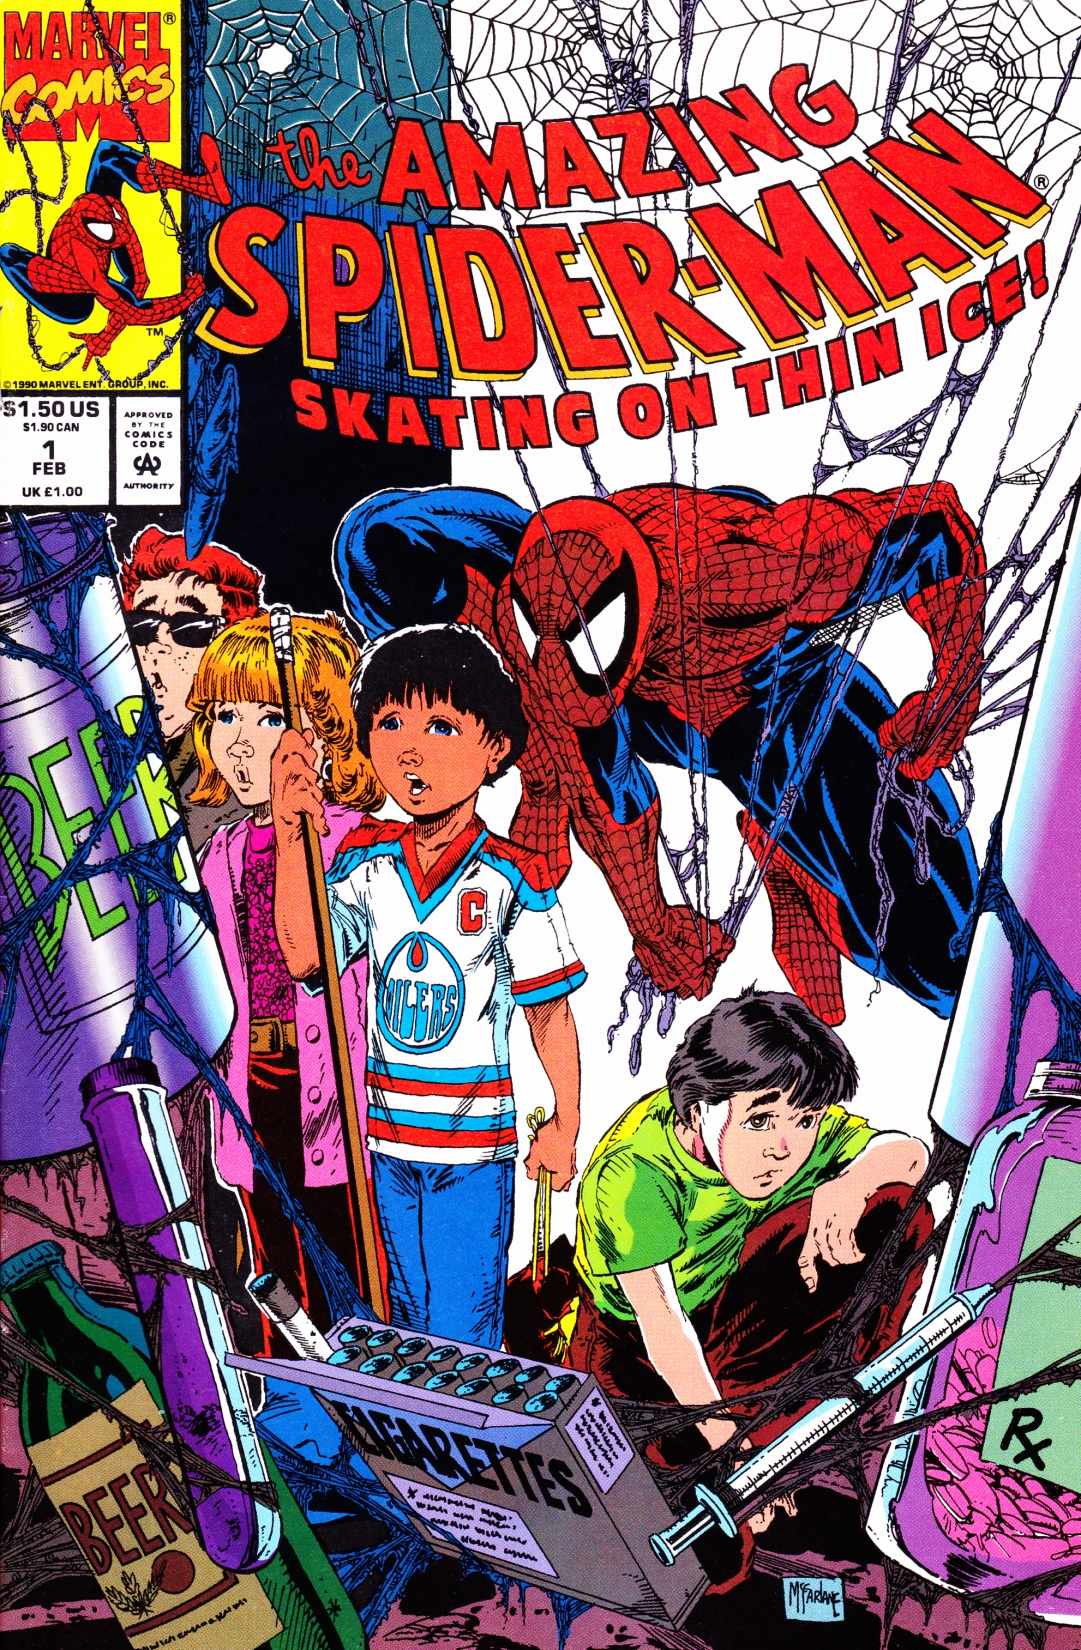 C:\Users\Robert\Documents\CARTOONING ILLUSTRATION ANIMATION\IMAGE CARTOON\IMAGE CARTOON S\SPIDERMAN, the Amazing Spiderman, 1-2, Fe3. 1993, fc.jpg